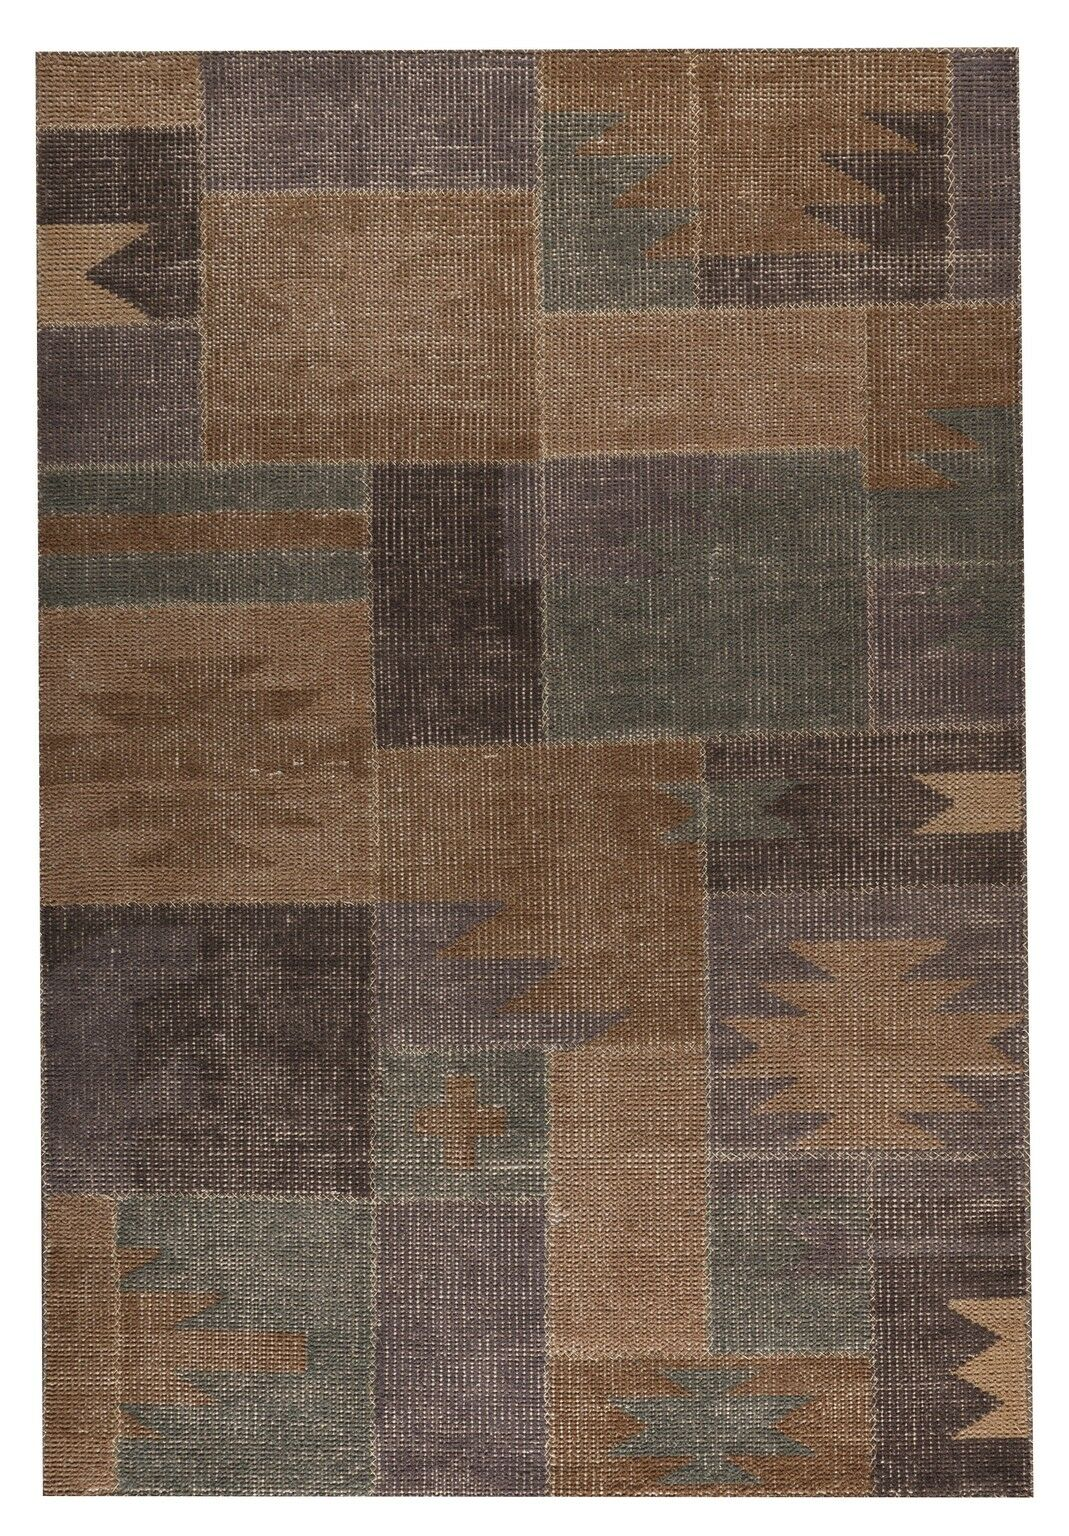 Lina classic Hand-Woven Silver Sage Area Rug Rug Size: 5'6